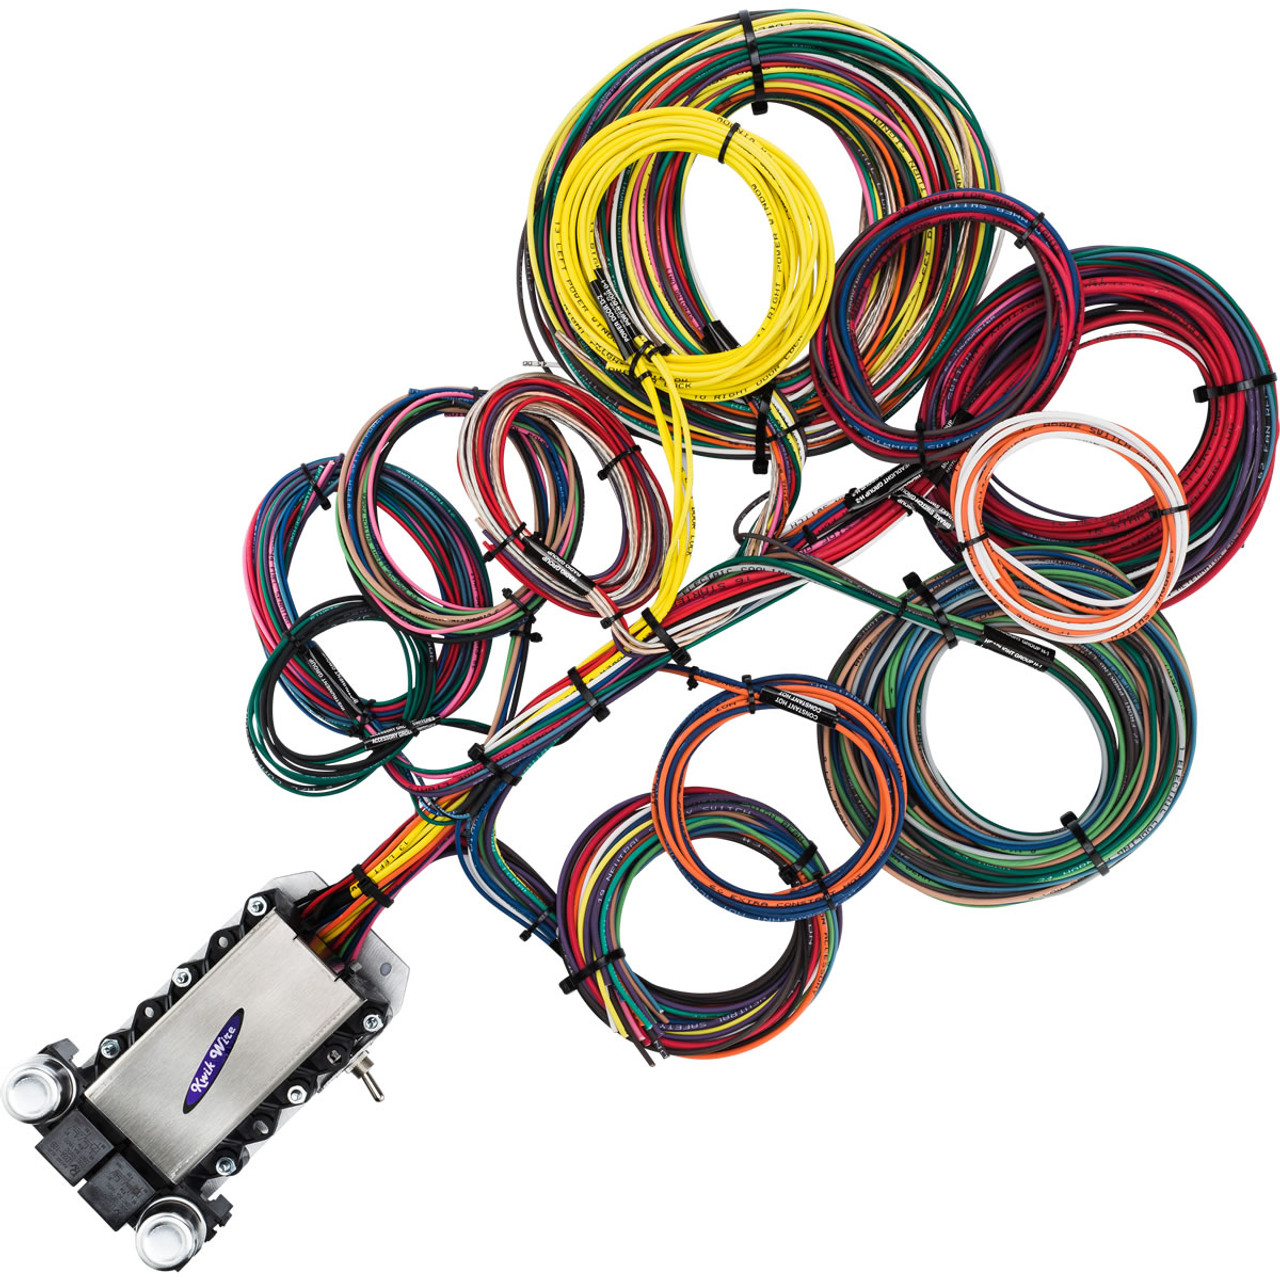 22 Circuit Ford Wire Harness - KwikWire.com   Electrify Your Ride